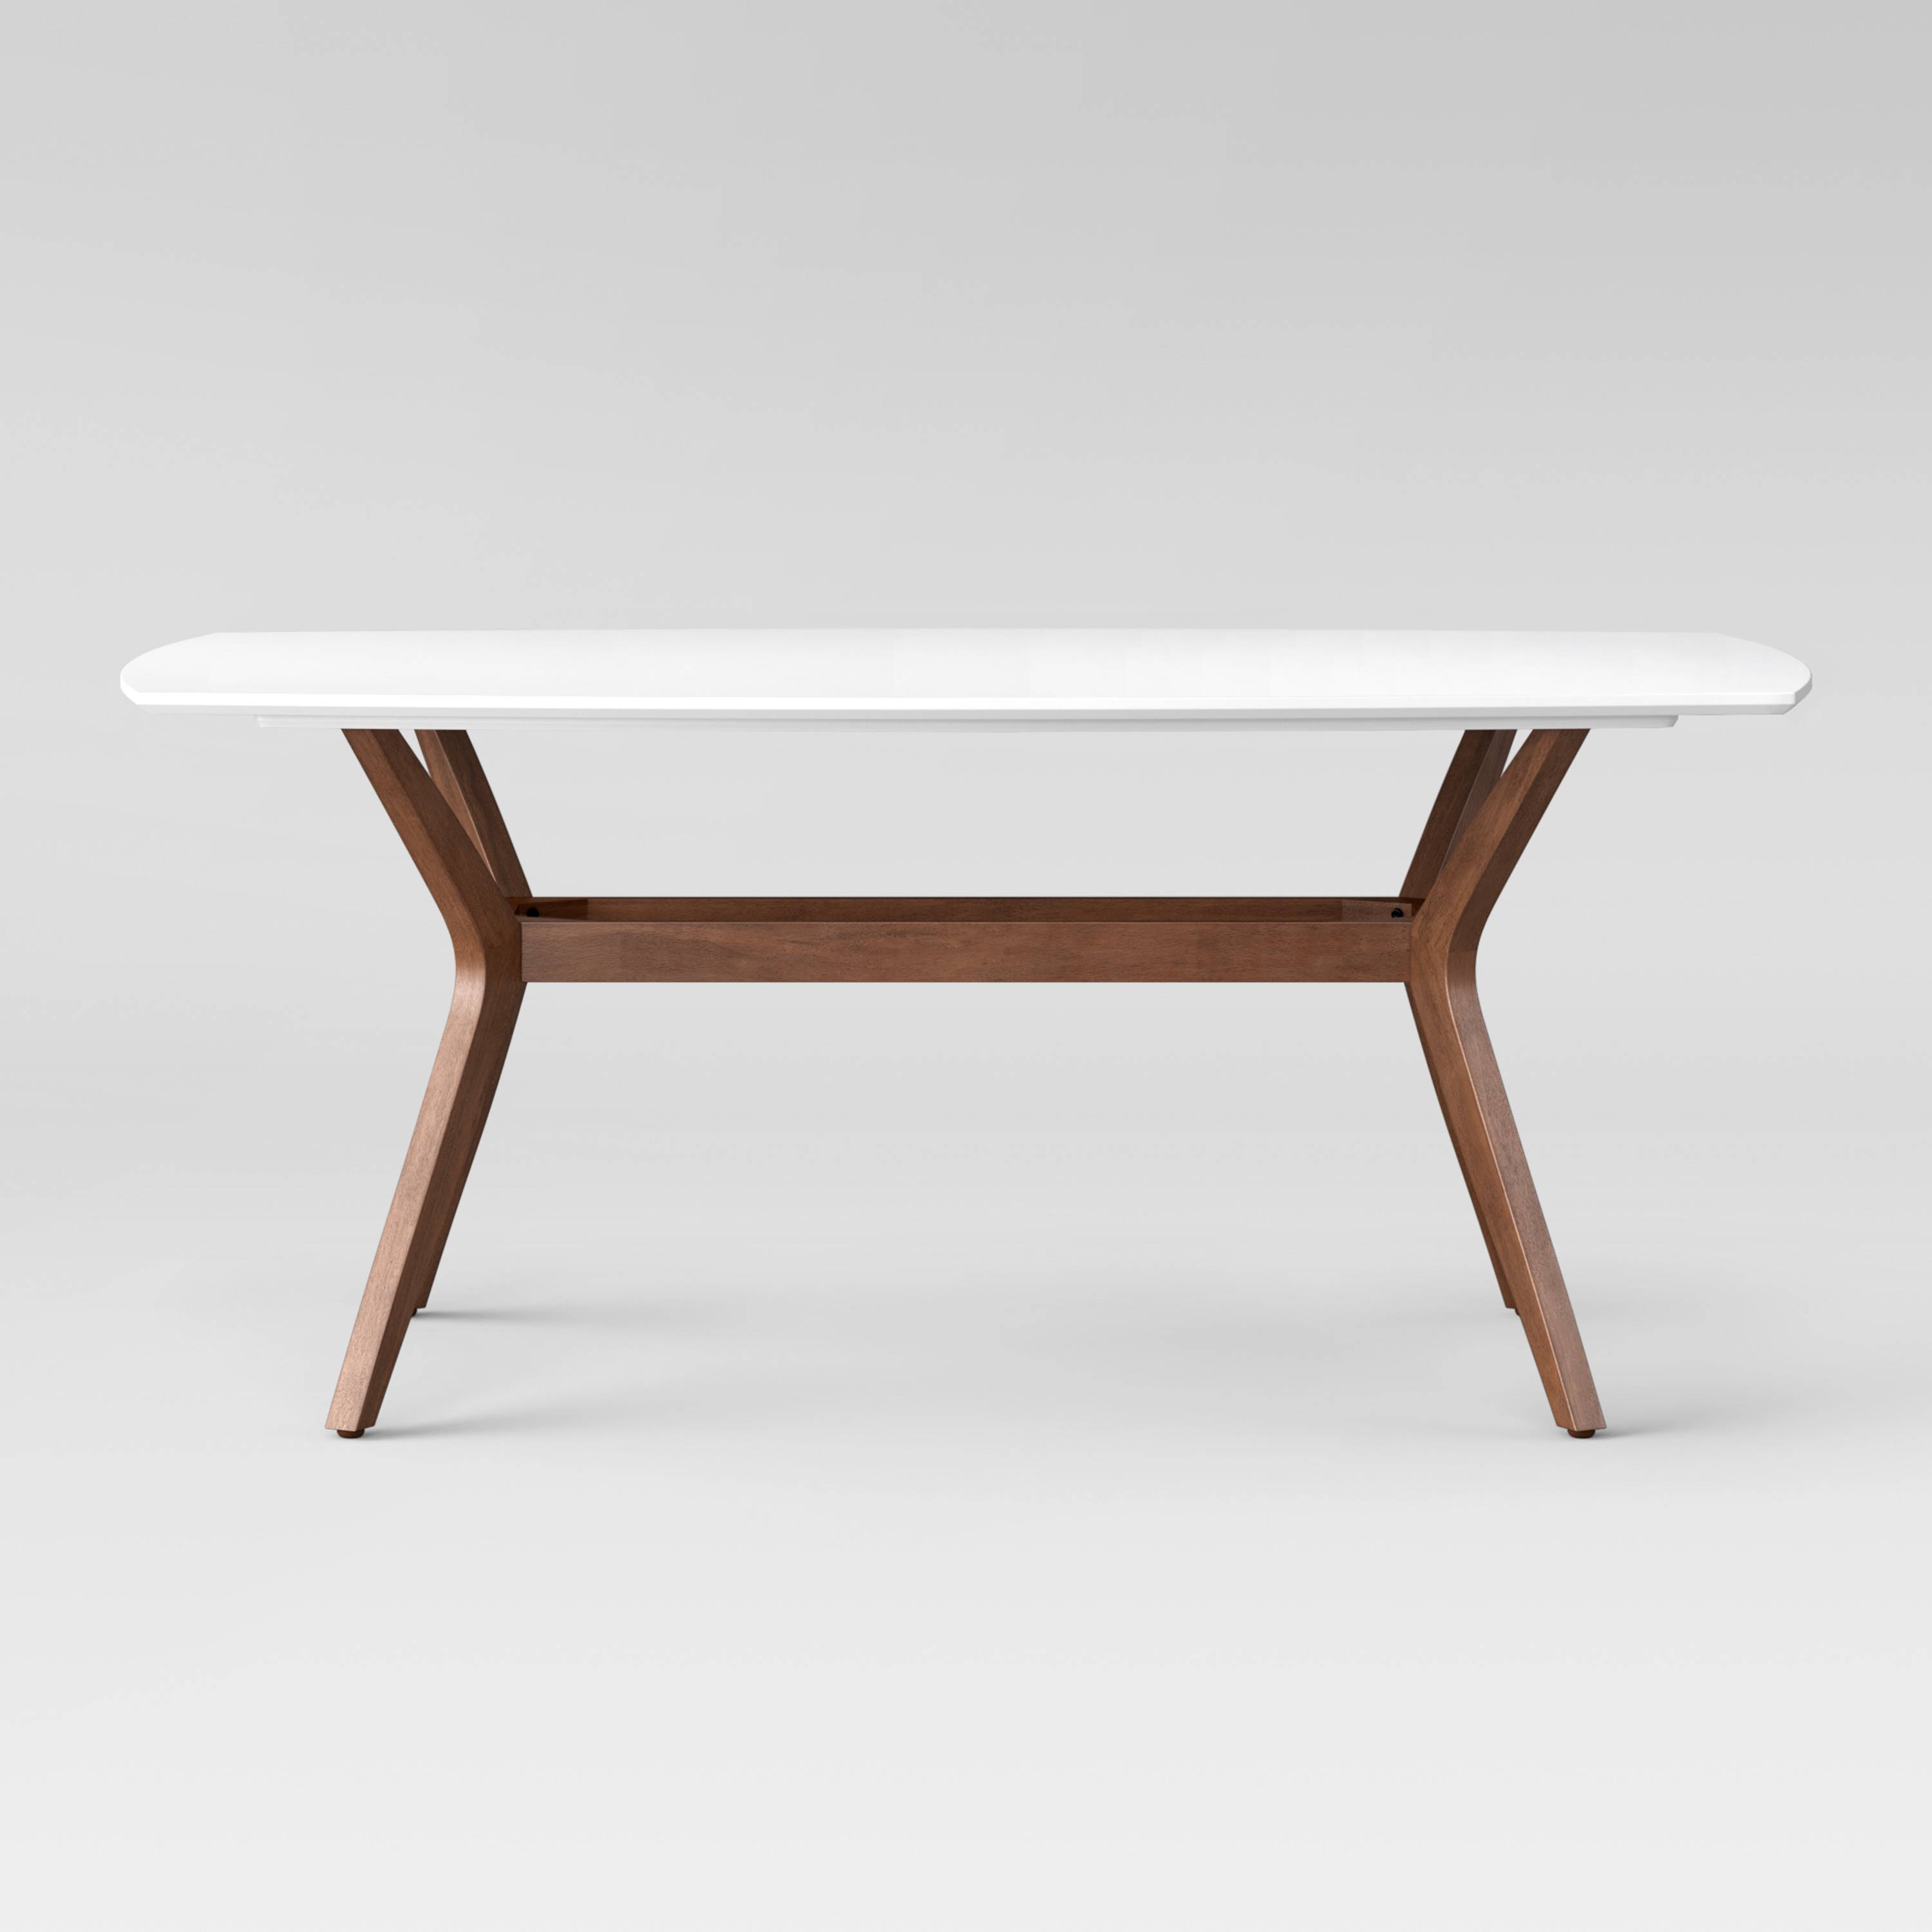 target new mid century modern collection here and are mawr metal accent table living for magnussen allure end bunnings outdoor chairs small tables ikea fire pit set timber legs